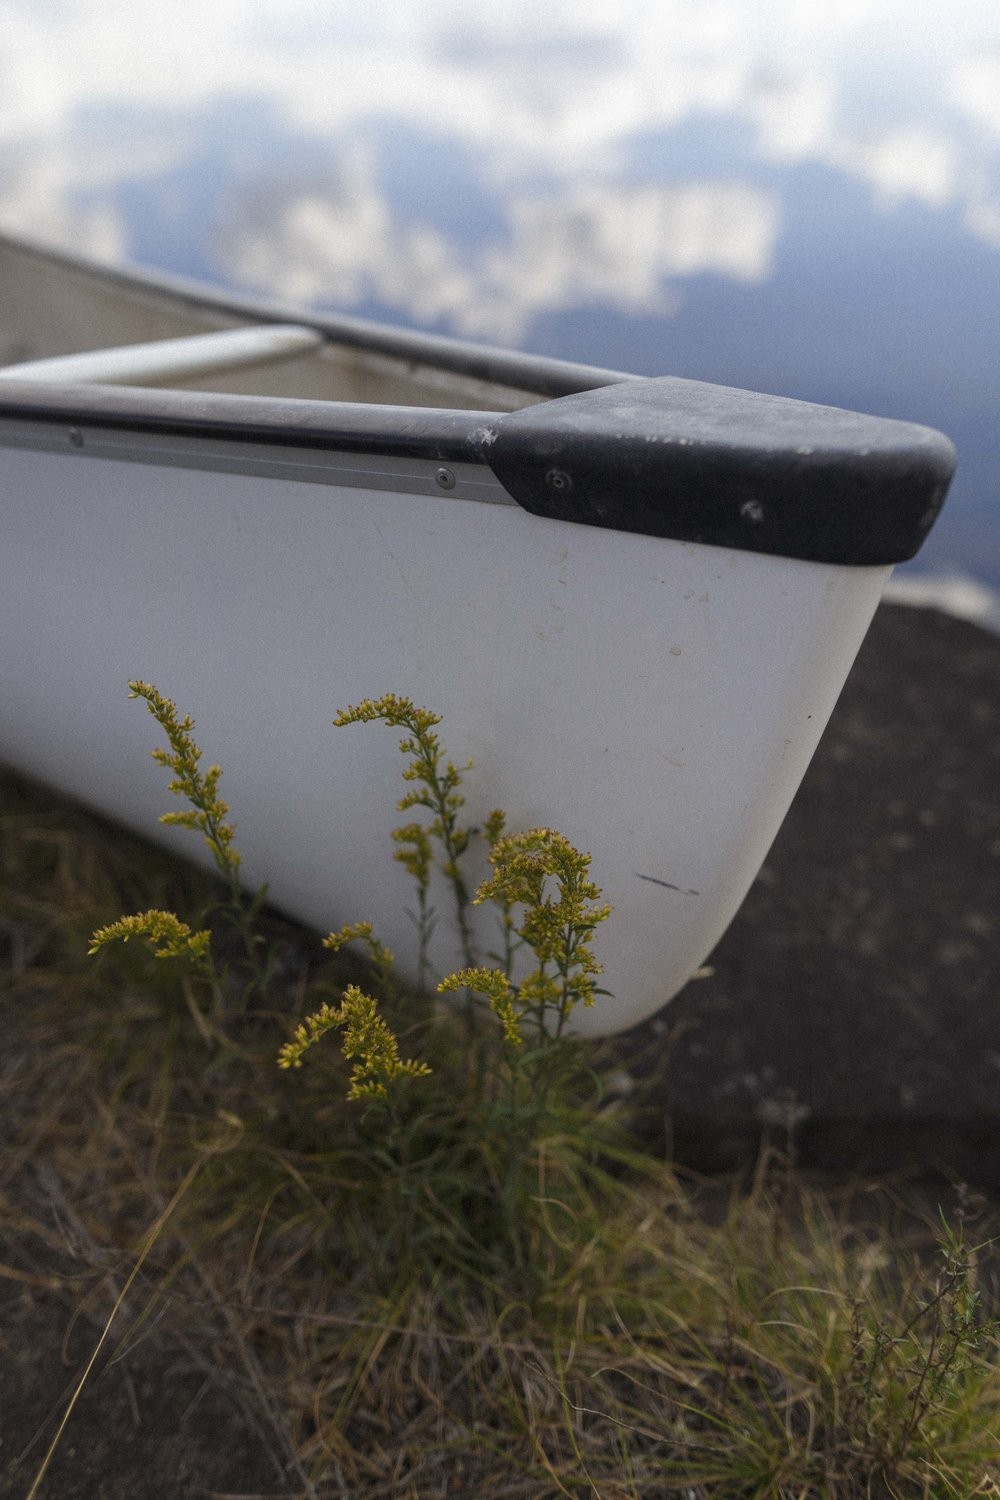 Canoe and flowers in Nopiming Provincial Park. An amazing afternoon paddling over glassy lakes.